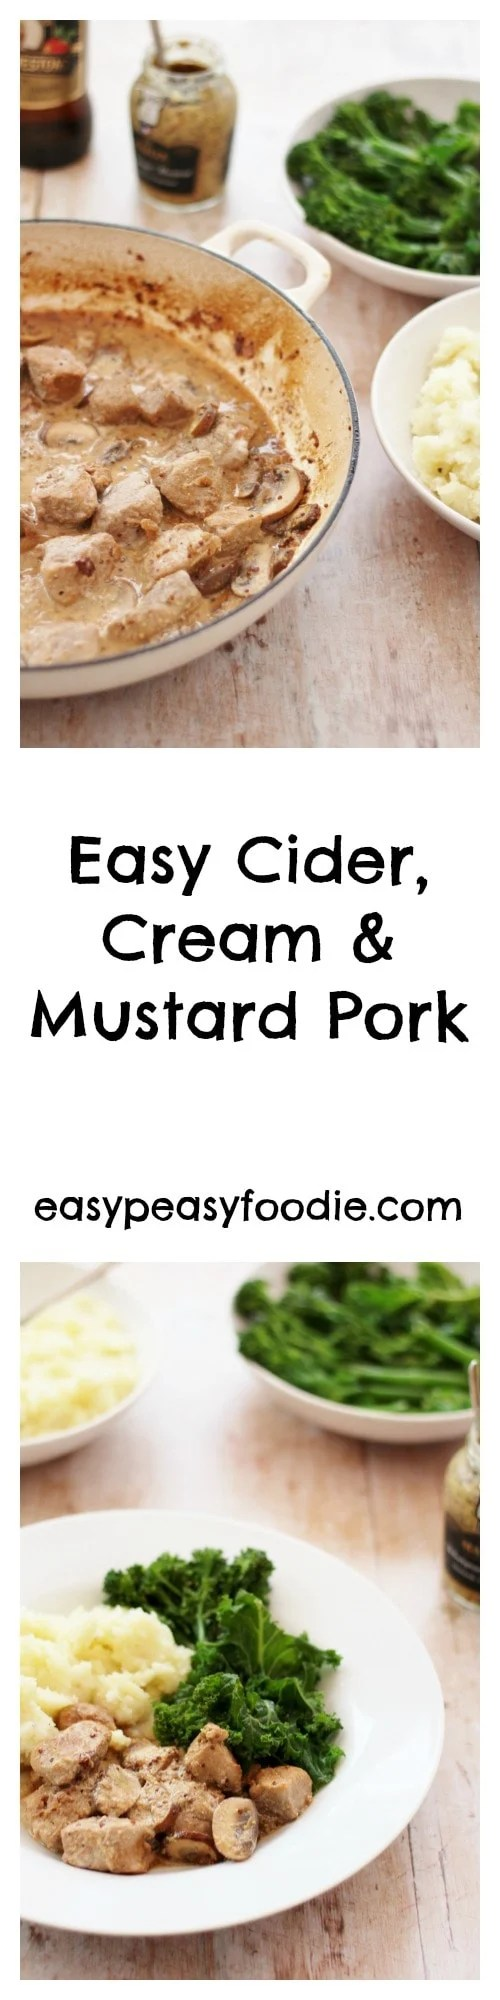 My favourite recipes are those which taste like they are from a fancy restaurant, but are actually really quick and easy to do. This Easy Cider, Cream and Mustard Pork is definitely one of those recipes! #pork #cider #mustard #easydinners #easyentertaining #midweekmeals #familydinners #easypeasyfoodie